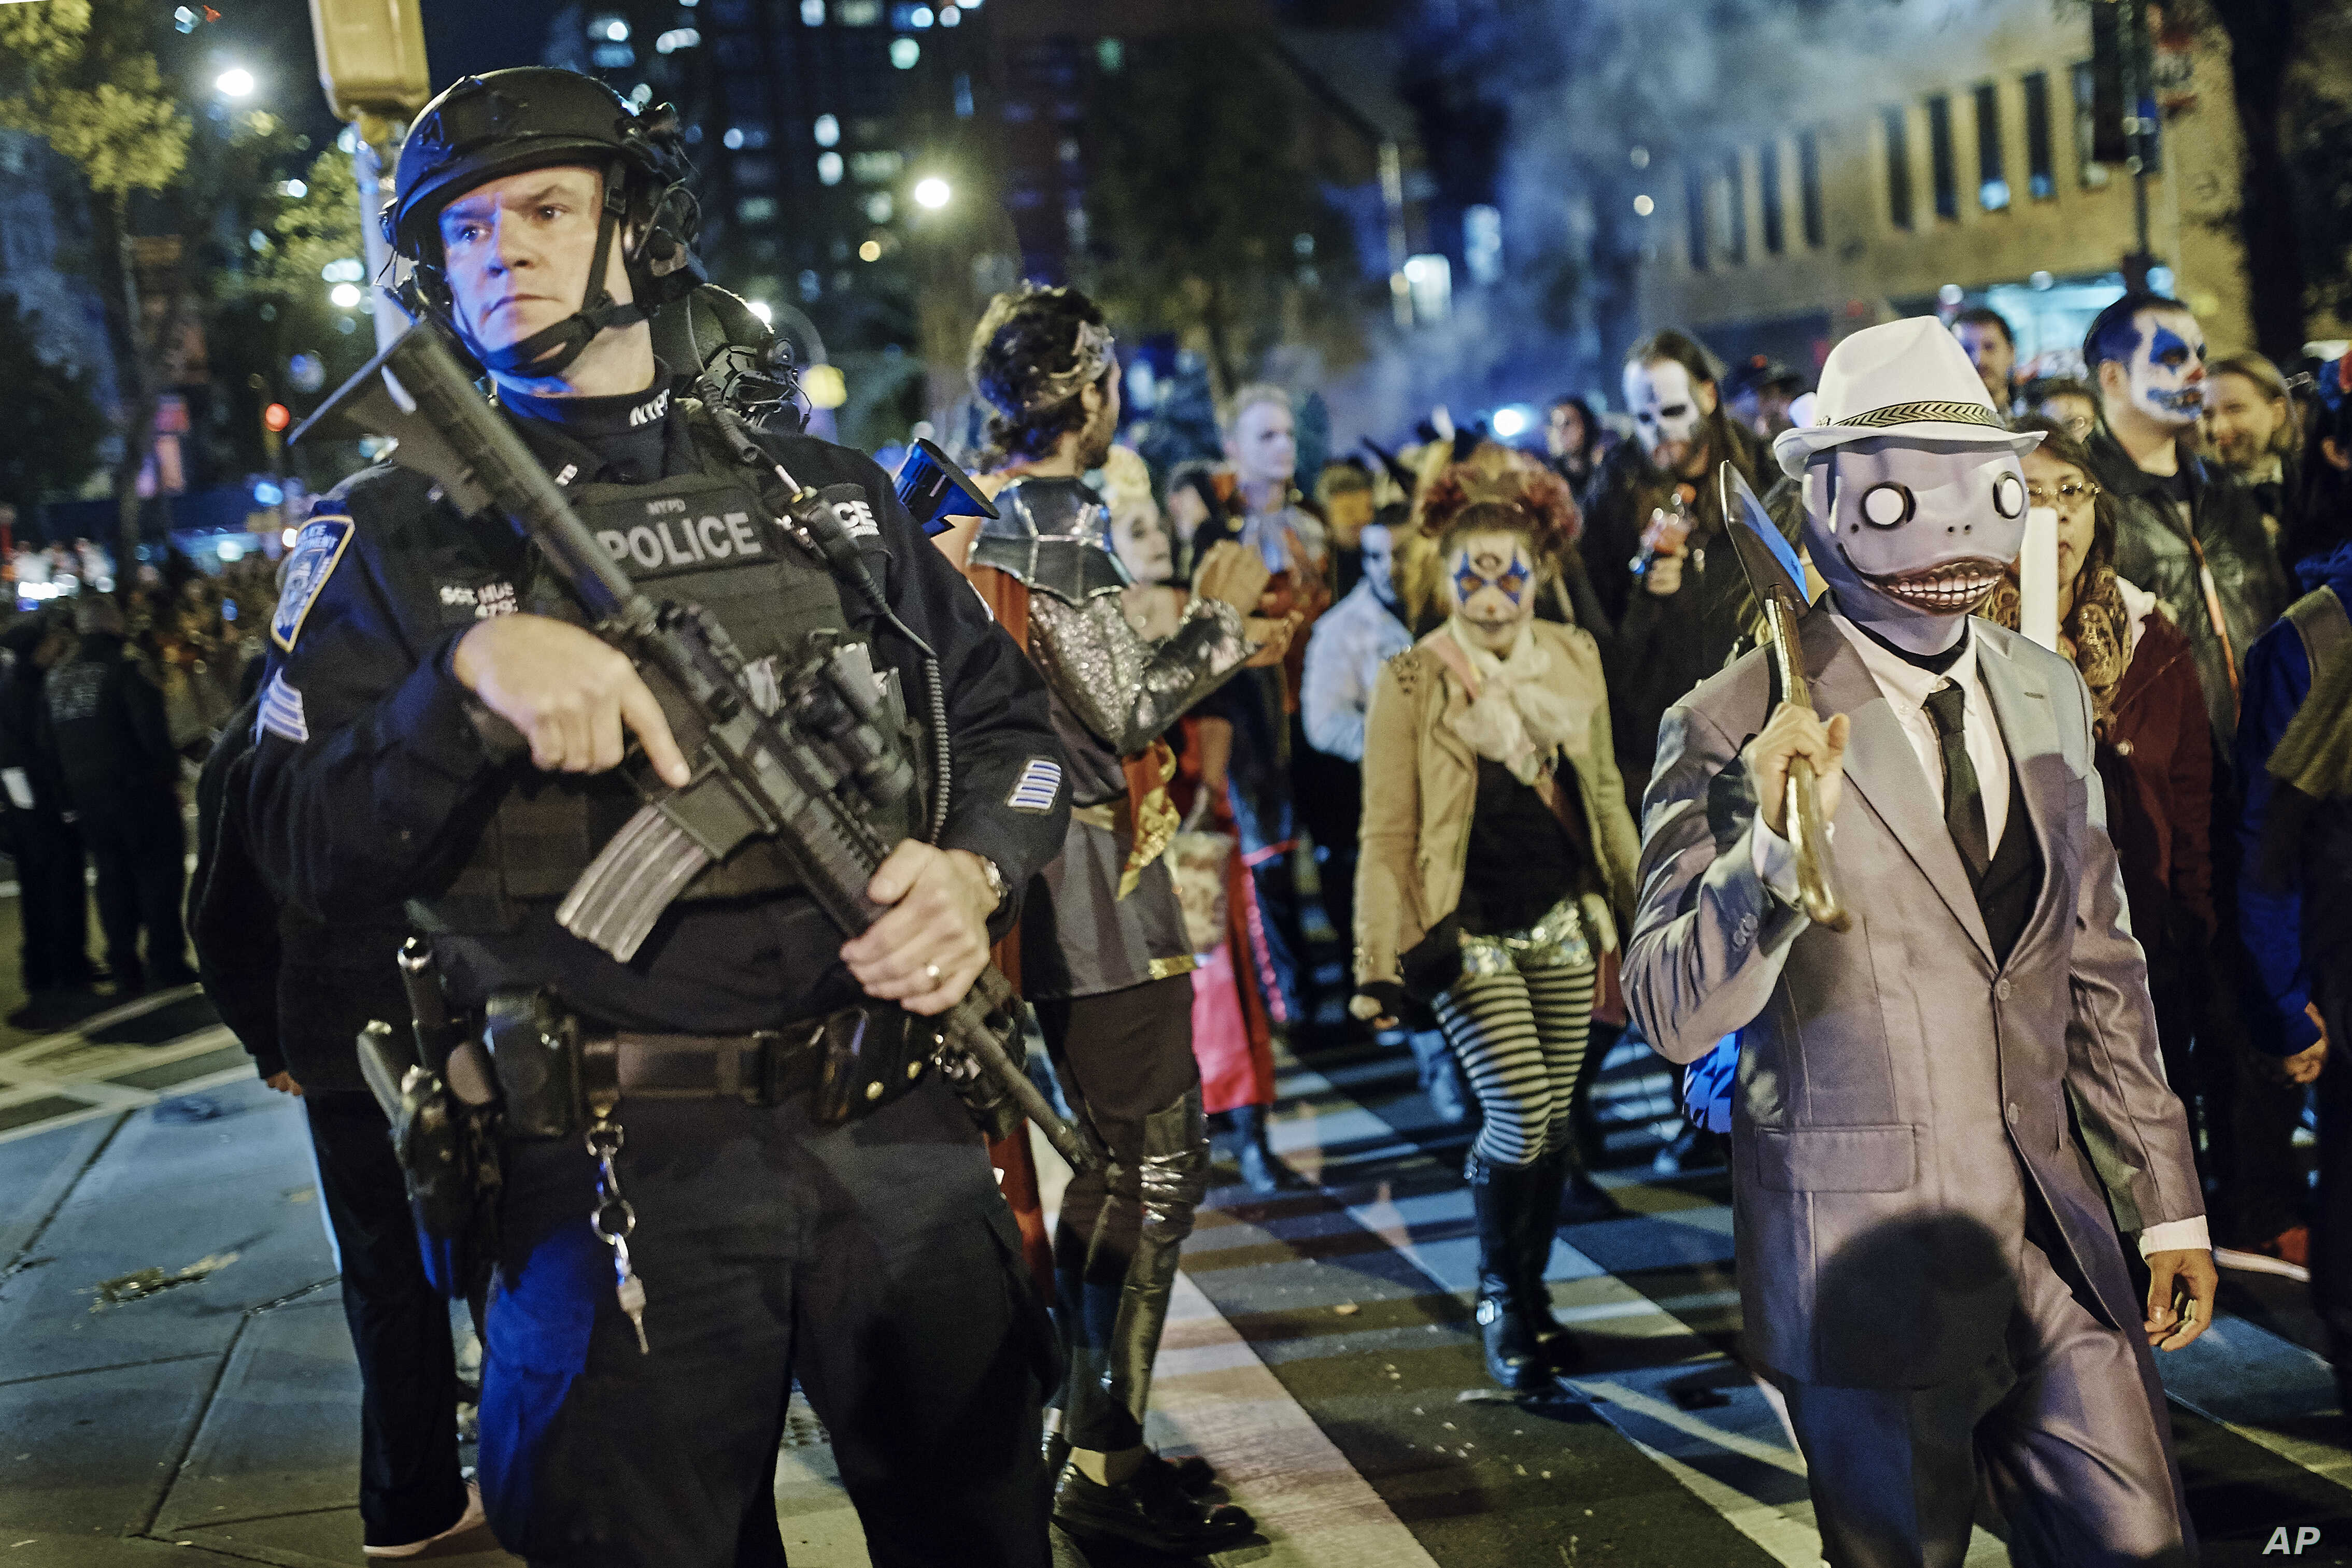 Heavily armed police guard as revelers march during the Greenwich Village Halloween Parade in New York, Oct. 31, 2017.